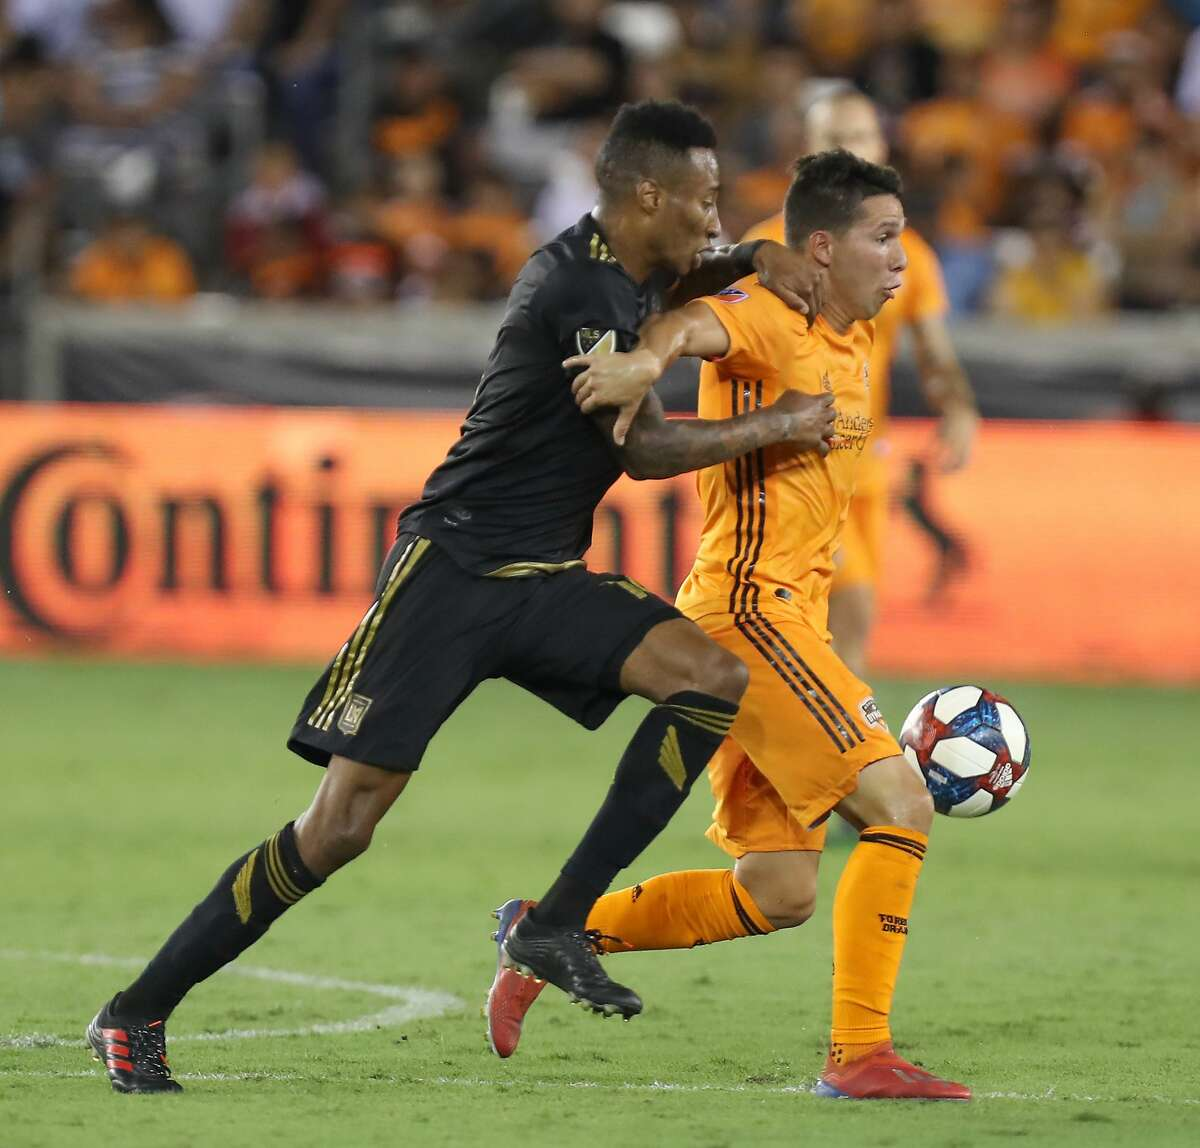 Los Angeles FC midfielder Mark-Anthony Kaye (14) and Houston Dynamo midfielder Tomas Martinez (10) battle for the ball during the first half of an MLS soccer match Friday, July 12, 2019, in Houston.